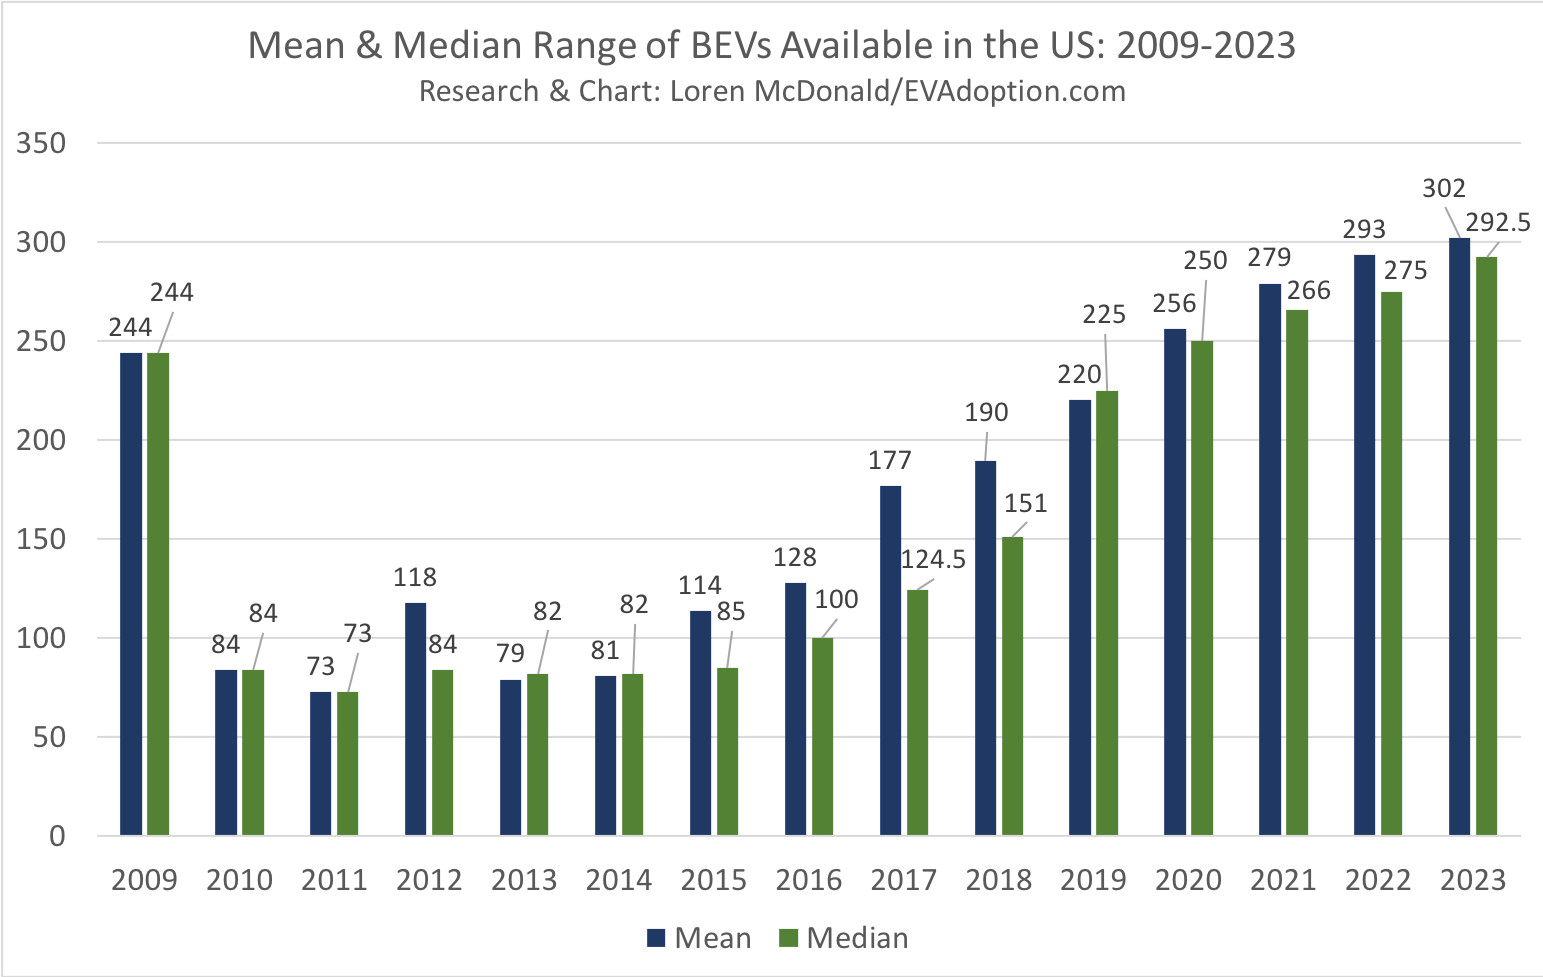 US BEV Fleet to Average 300 Miles of Range by Year End 2023